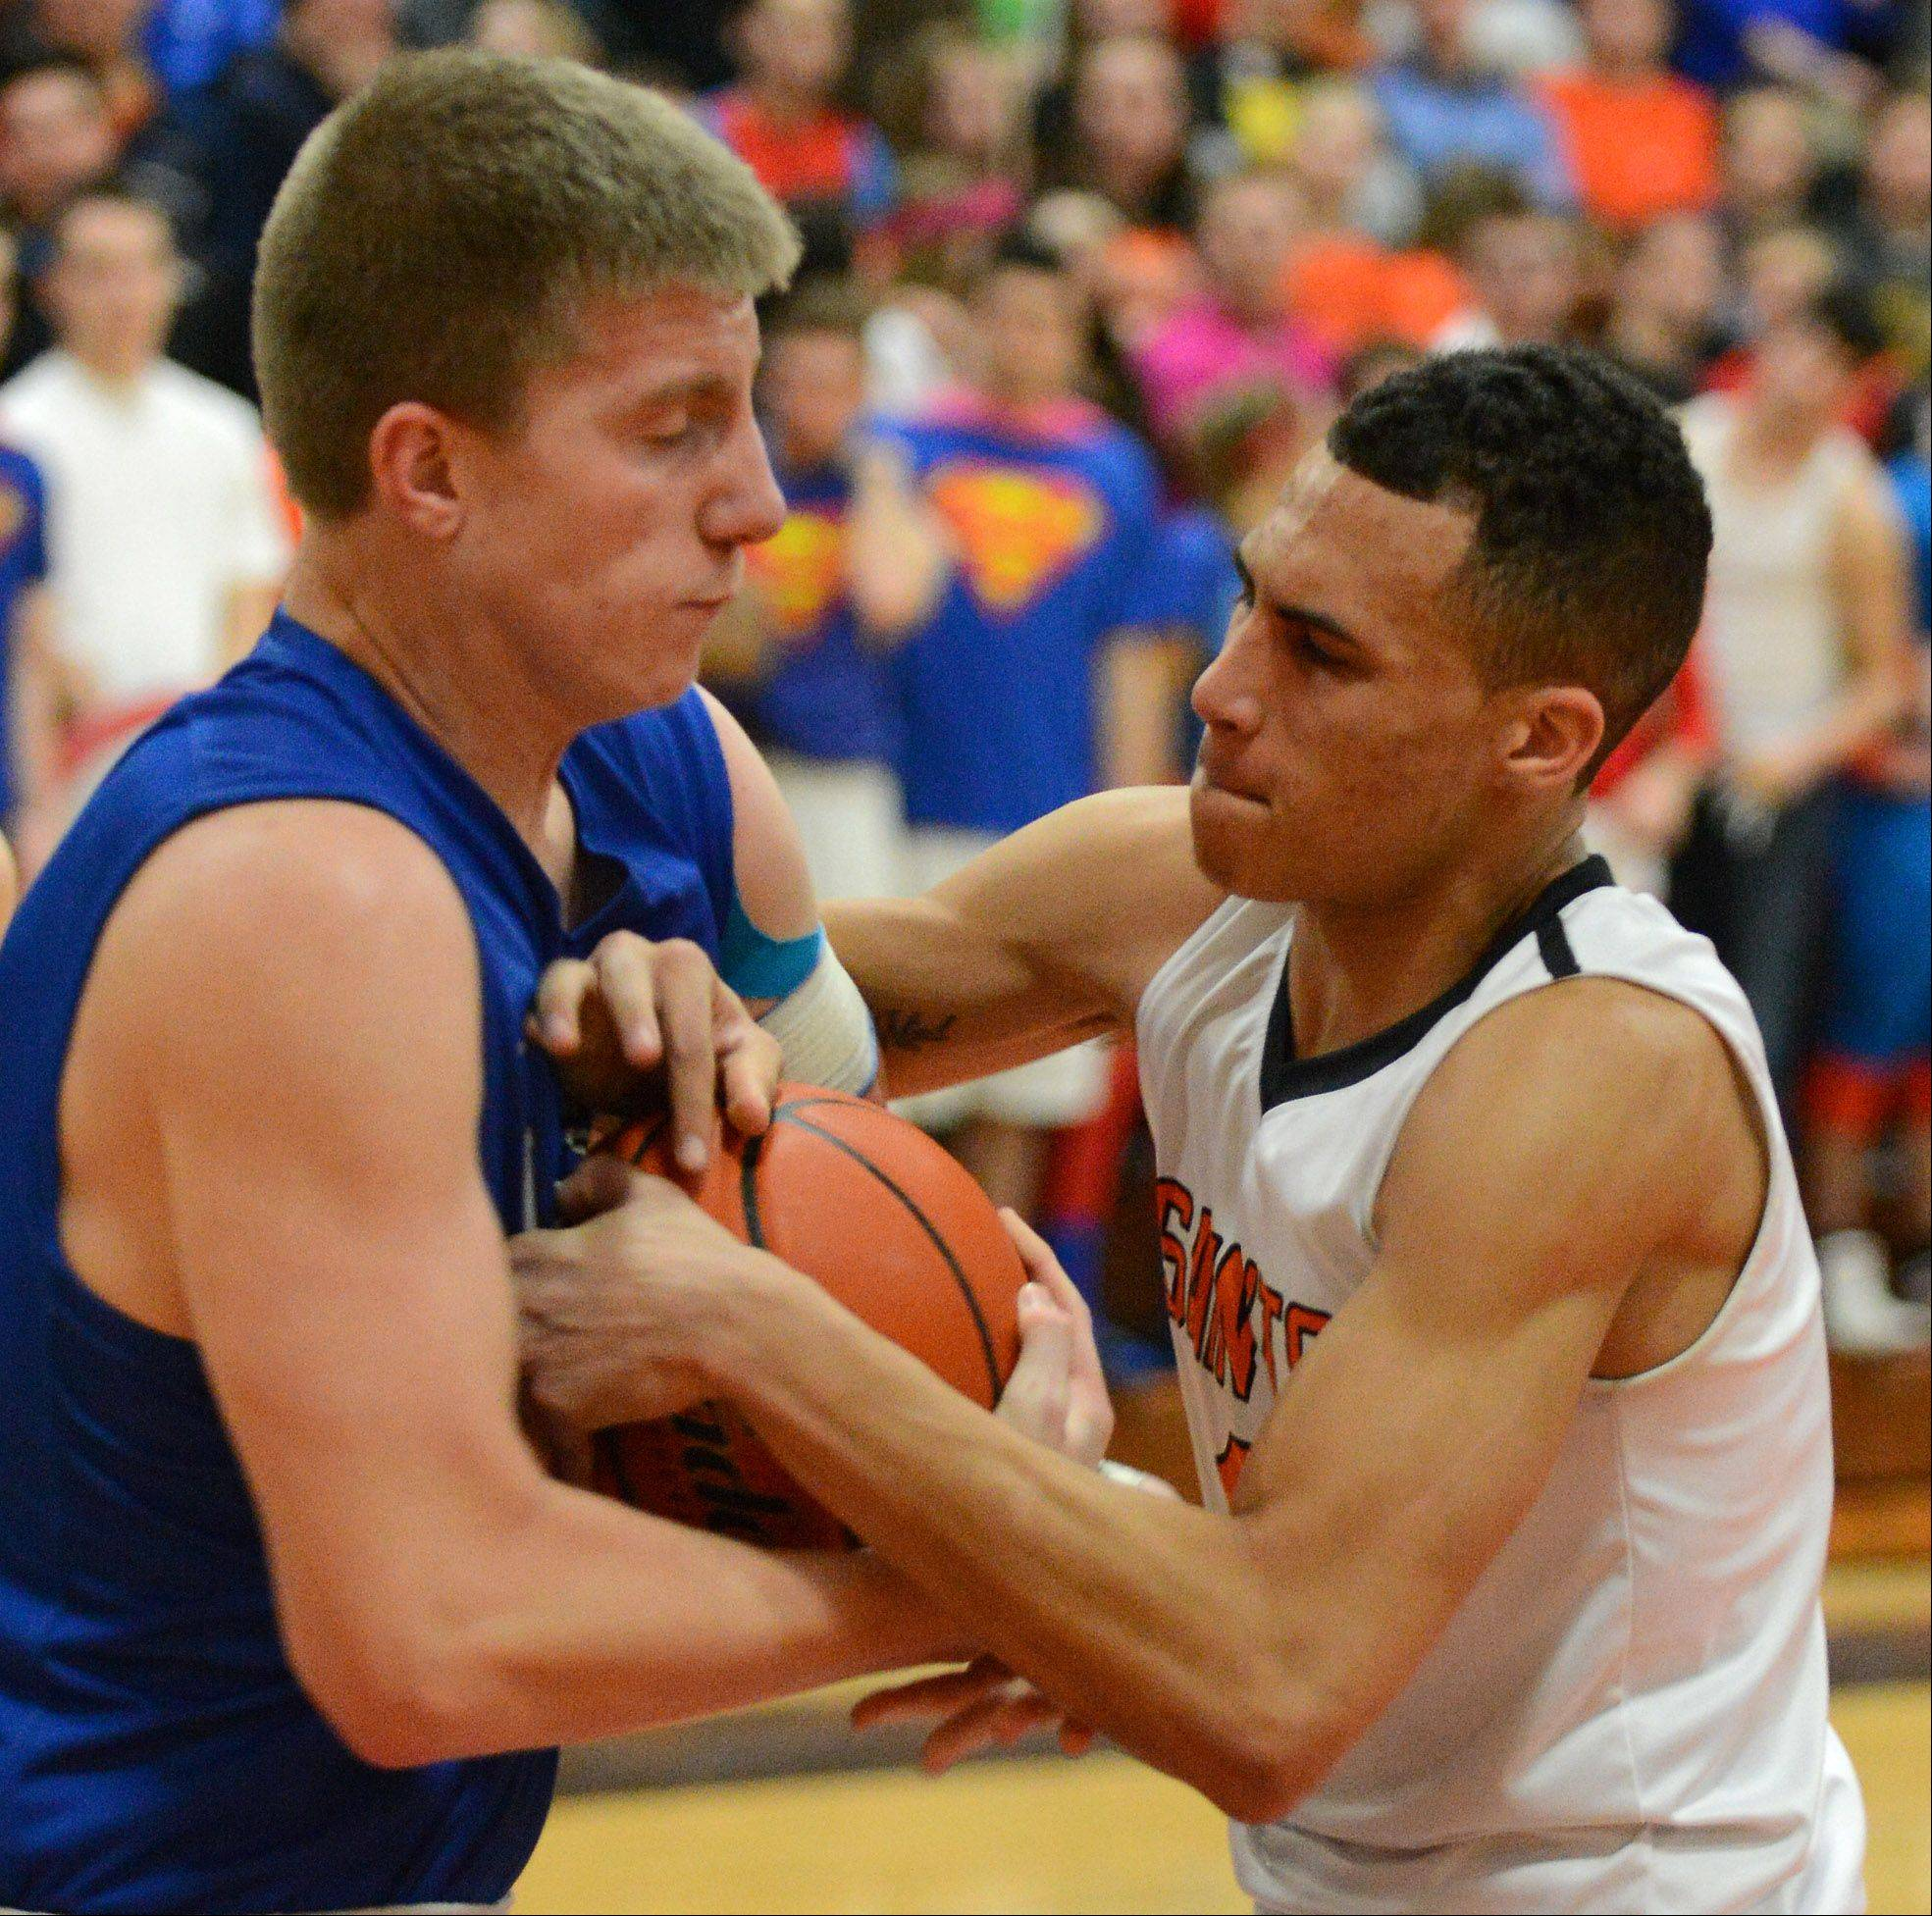 Images from the Larkin vs. St. Charles East boys basketball game Thursday, January 30, 2014.